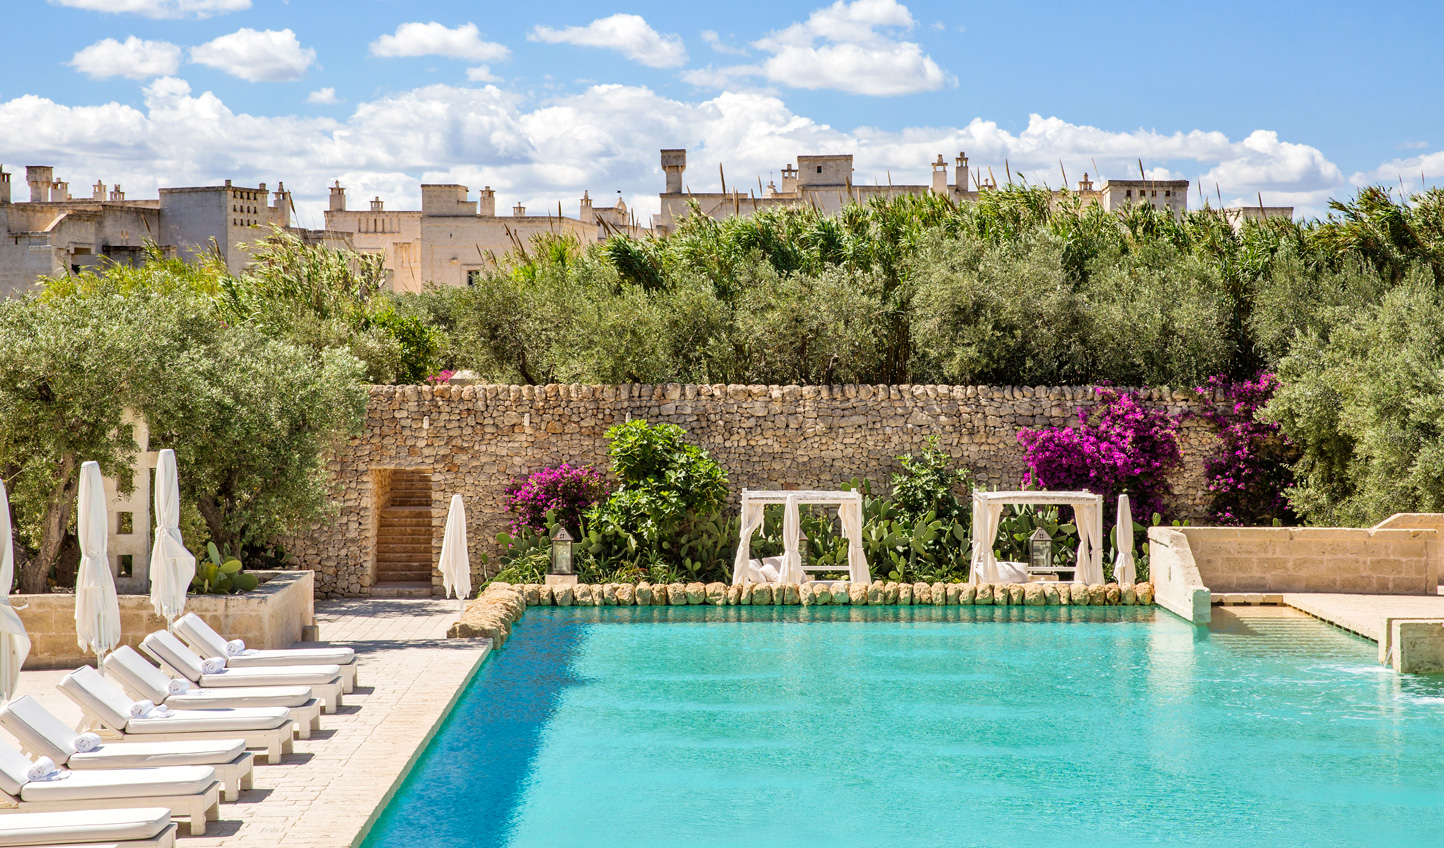 Cool off from the Mediterranean sun with a dip in the pool